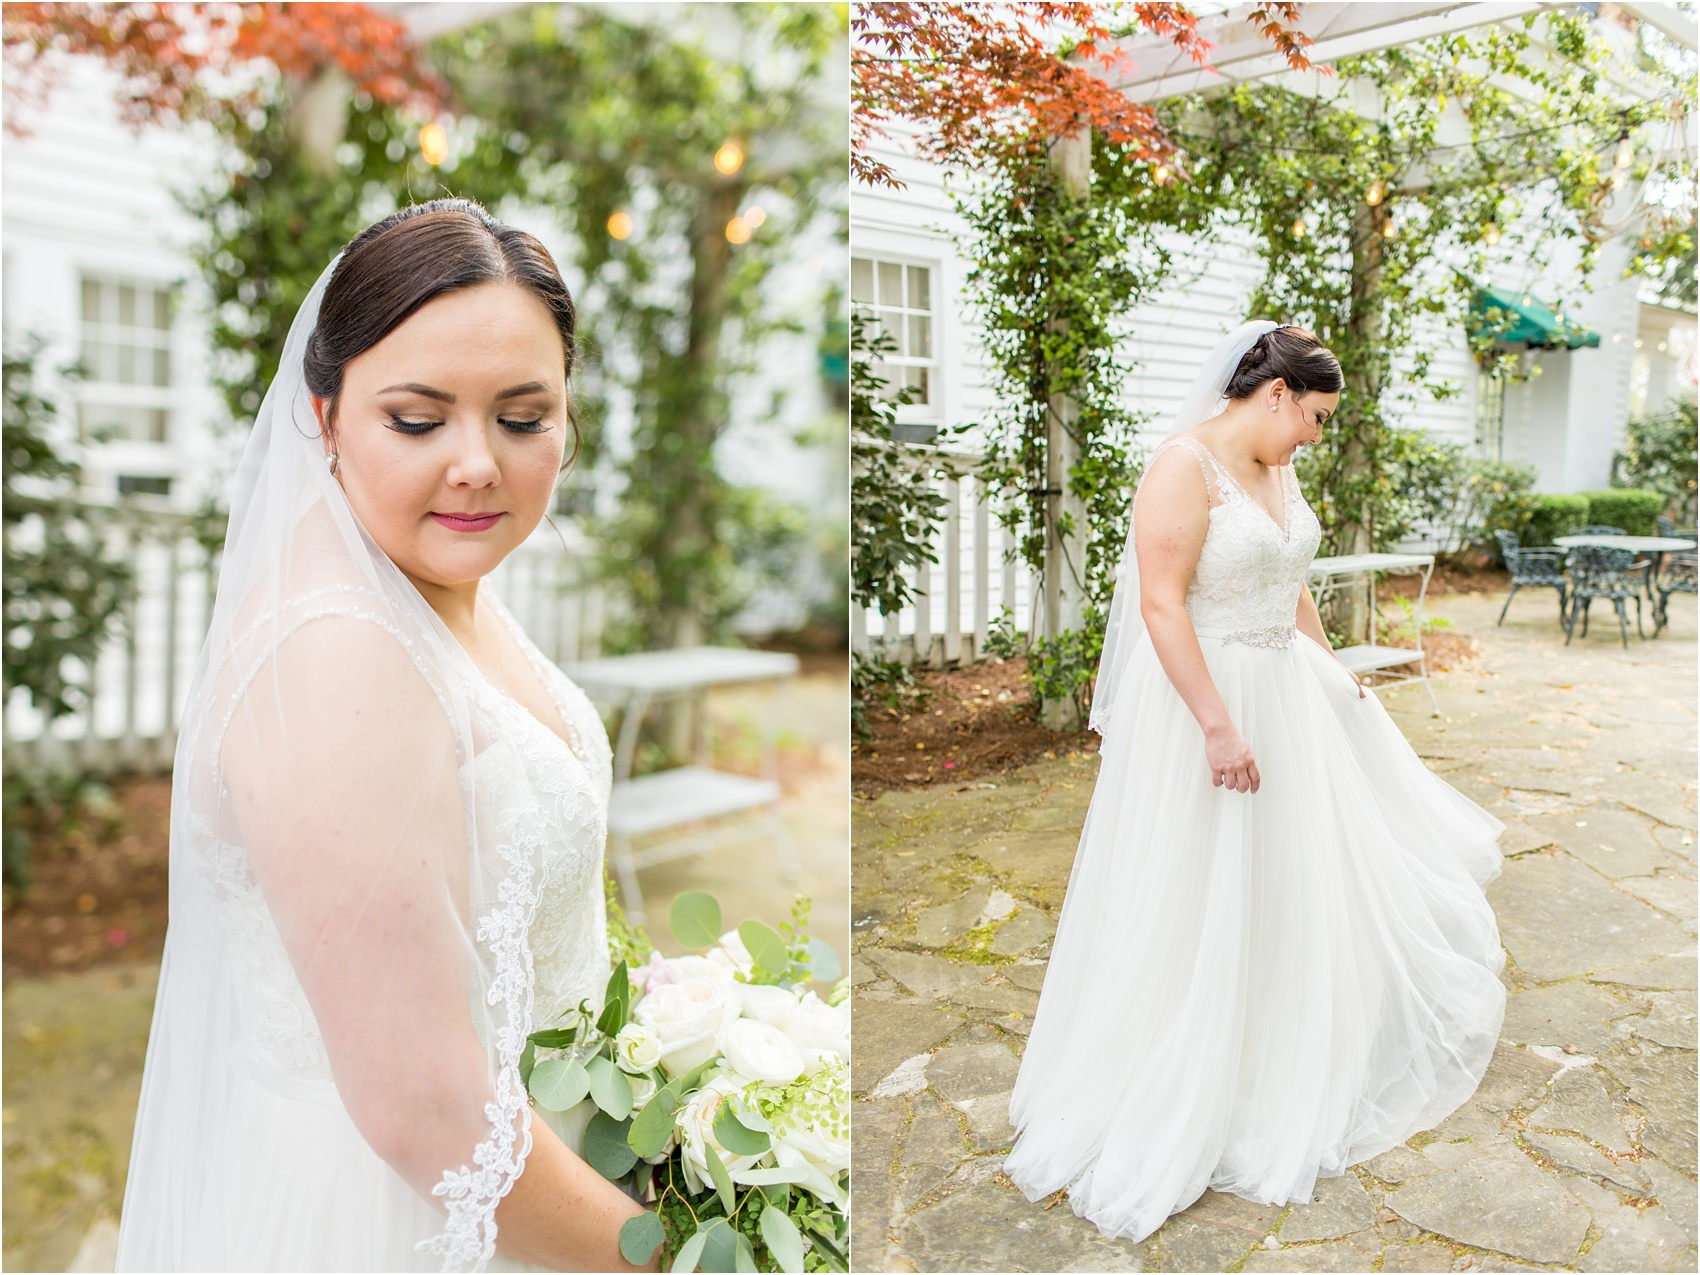 Savannah Eve Photography- Newton Wedding- Blog-79.jpg